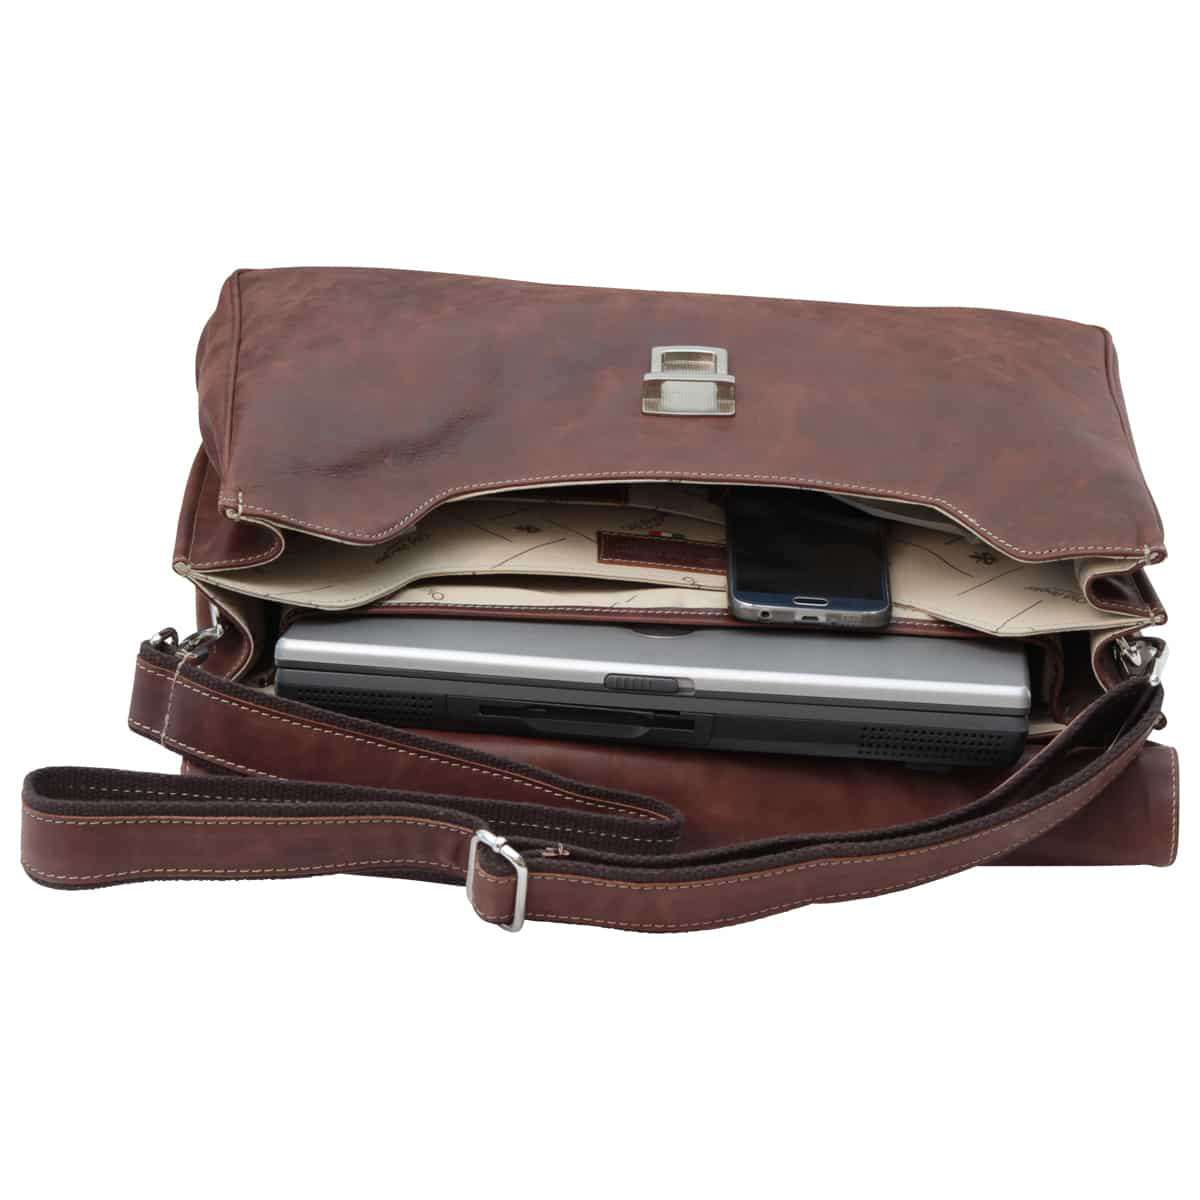 Oiled Calfskin Leather Briefcase with key closure - Chestnut | 074061CA E | Old Angler Firenze